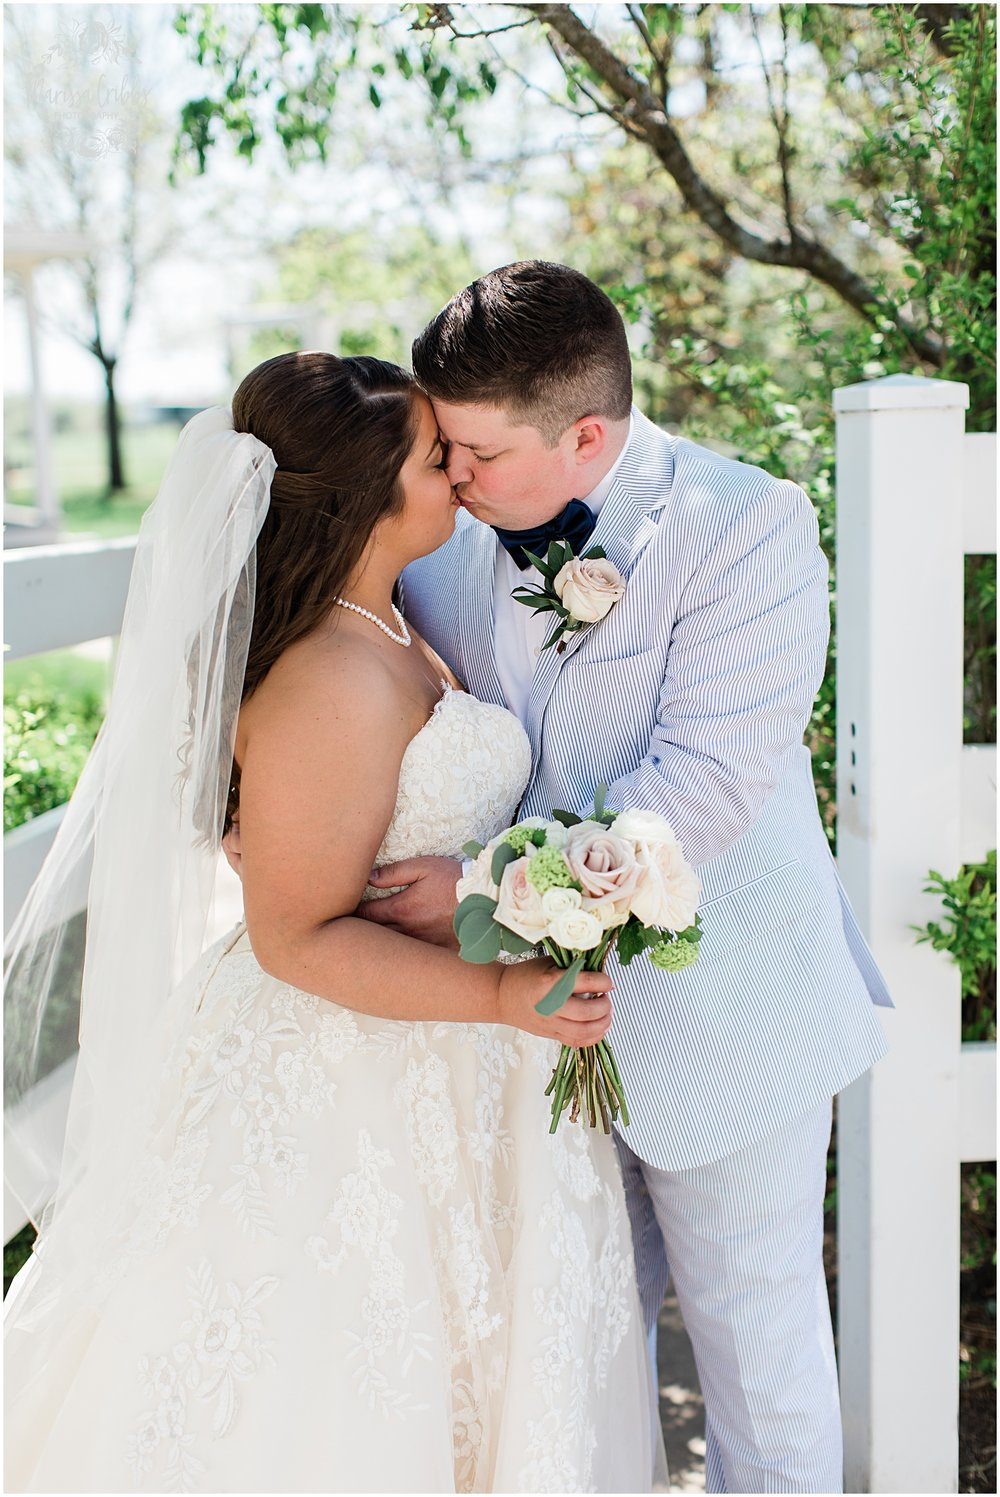 ANDREA & MICHAEL WEDDING | HICKORY CREEK RANCH | MARISSA CRIBBS PHOTOGRAPHY_4852.jpg